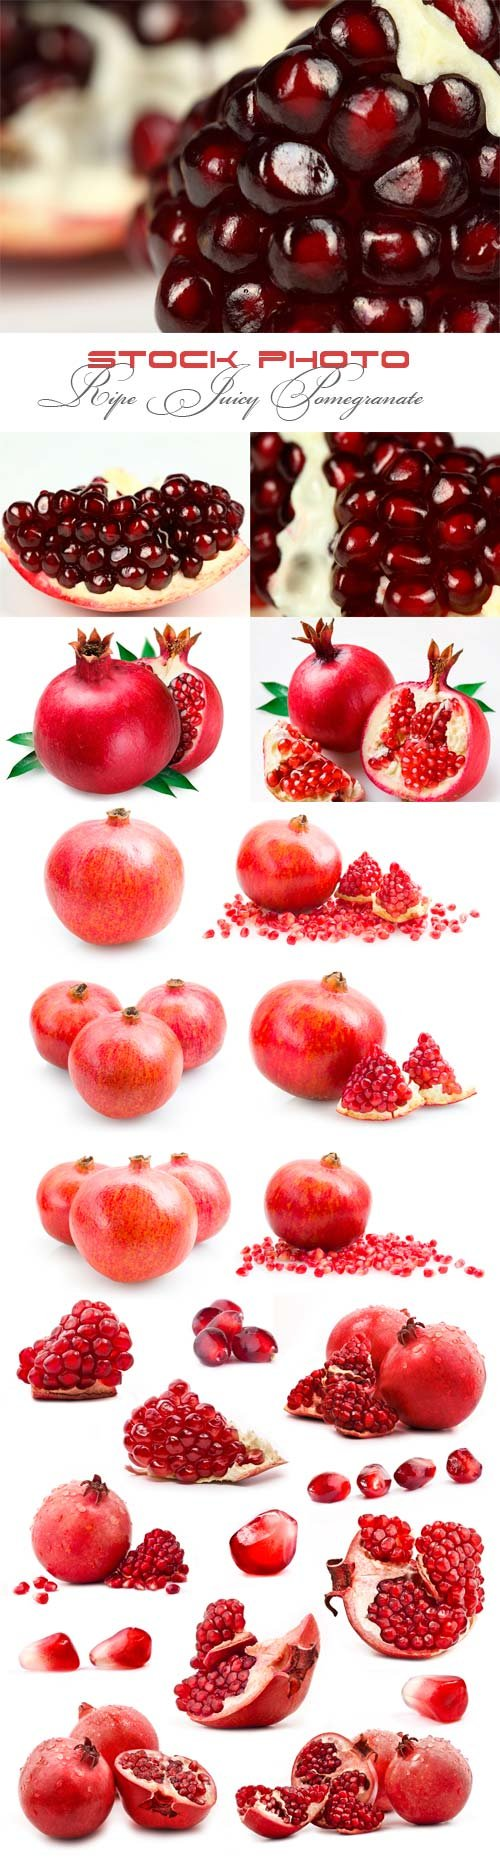 Ripe juicy pomegranate raster graphics